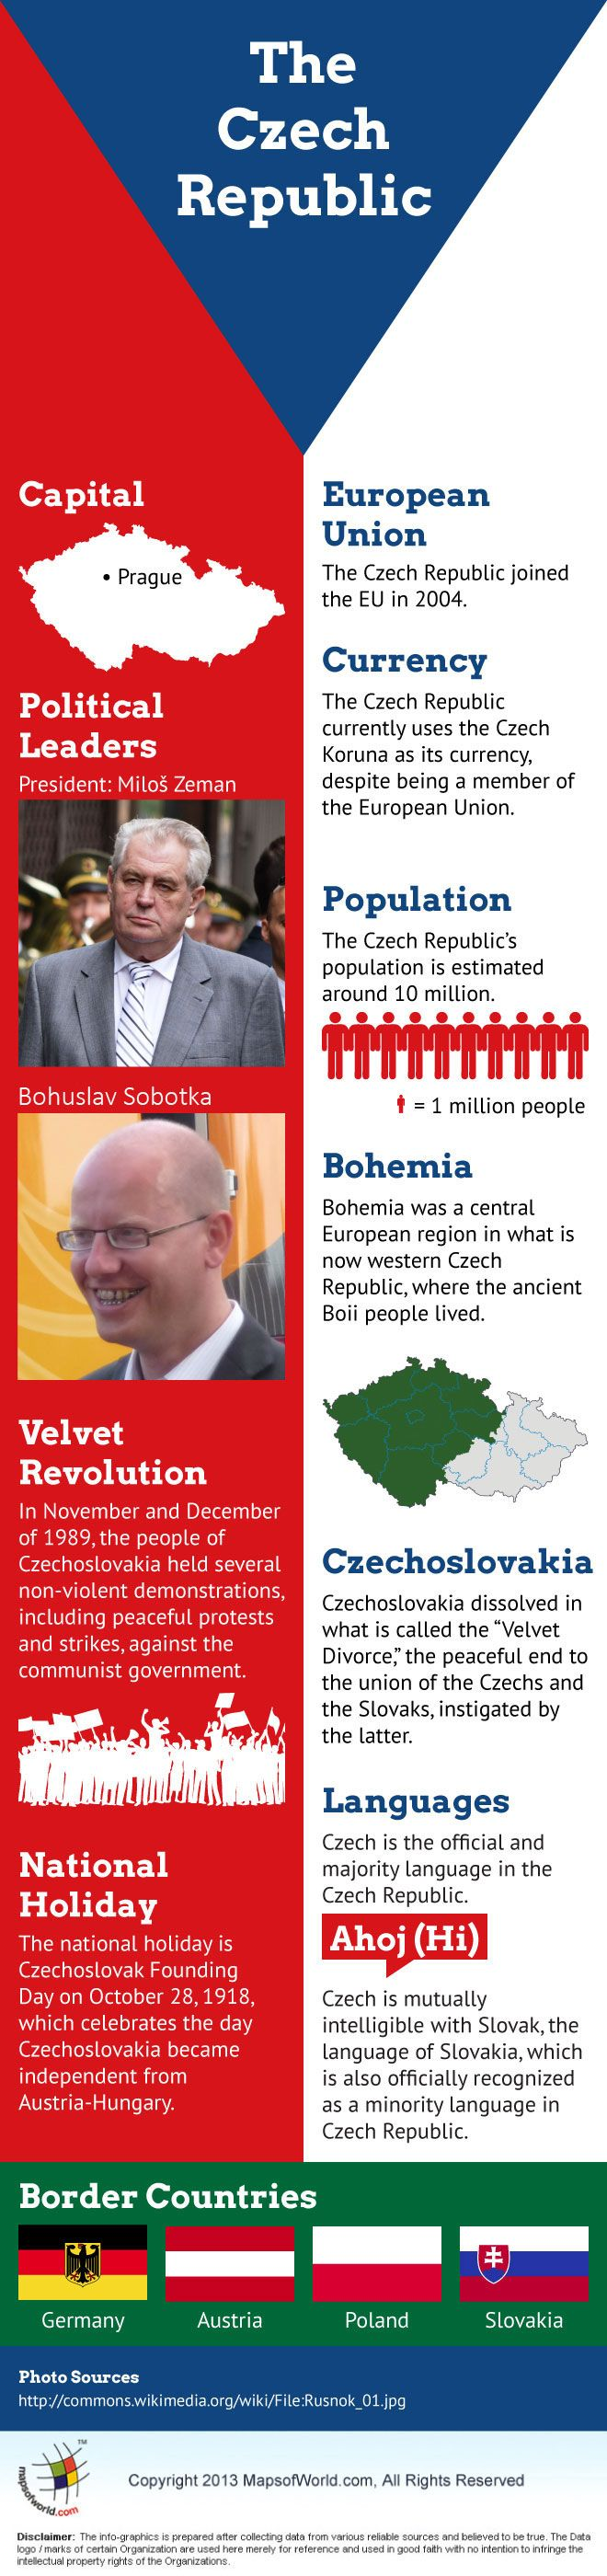 Infographic of The Czech Republic Facts